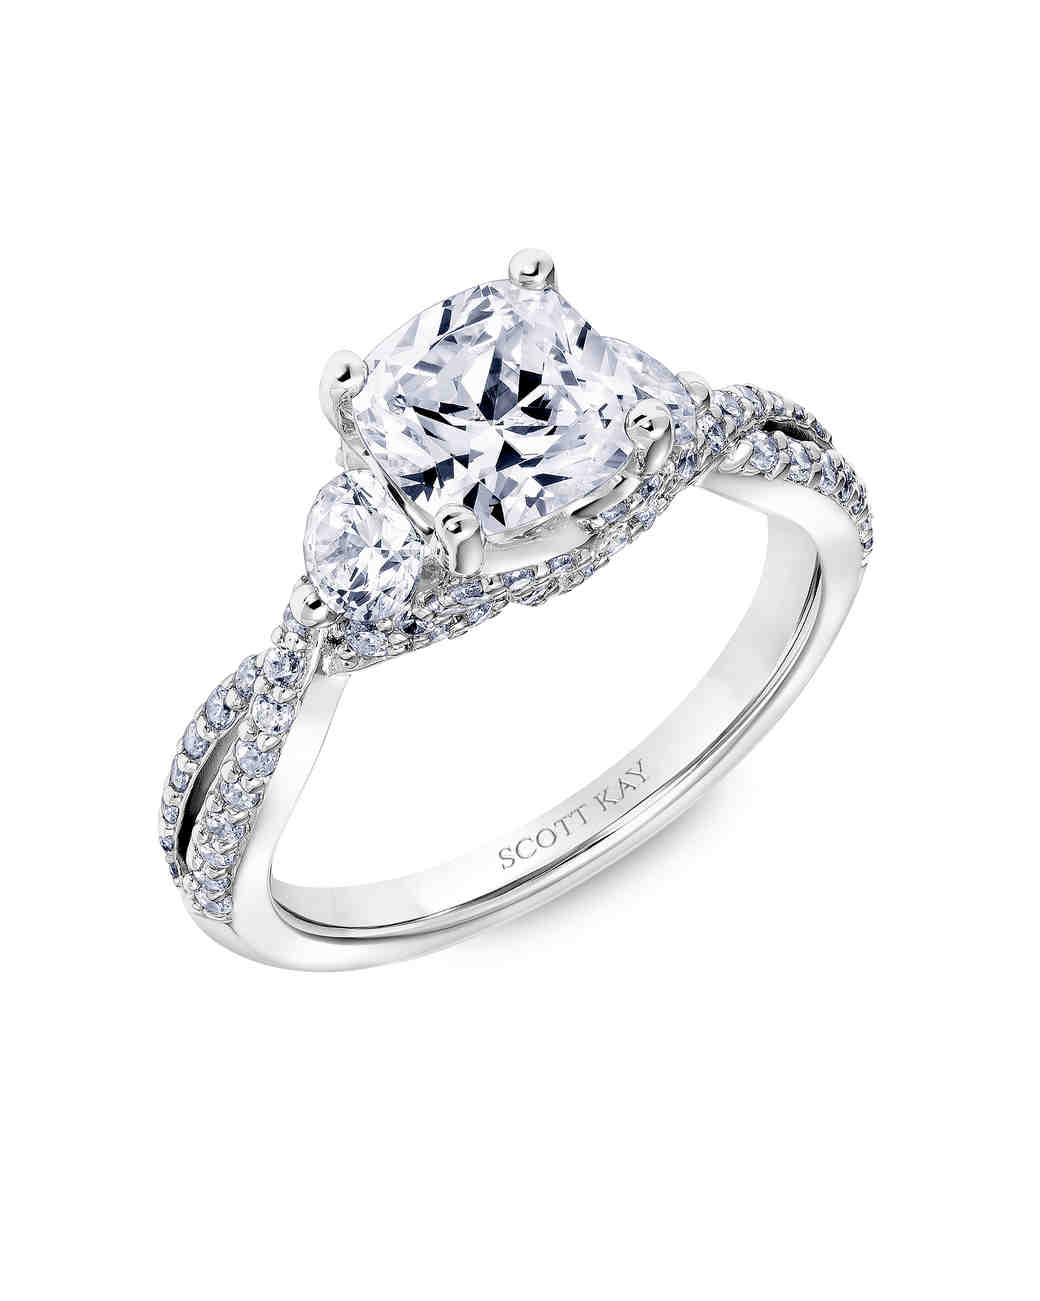 band gates rings detailed ring s heaven filigree engagement kay heavens cfm semi mount scott diamond detail